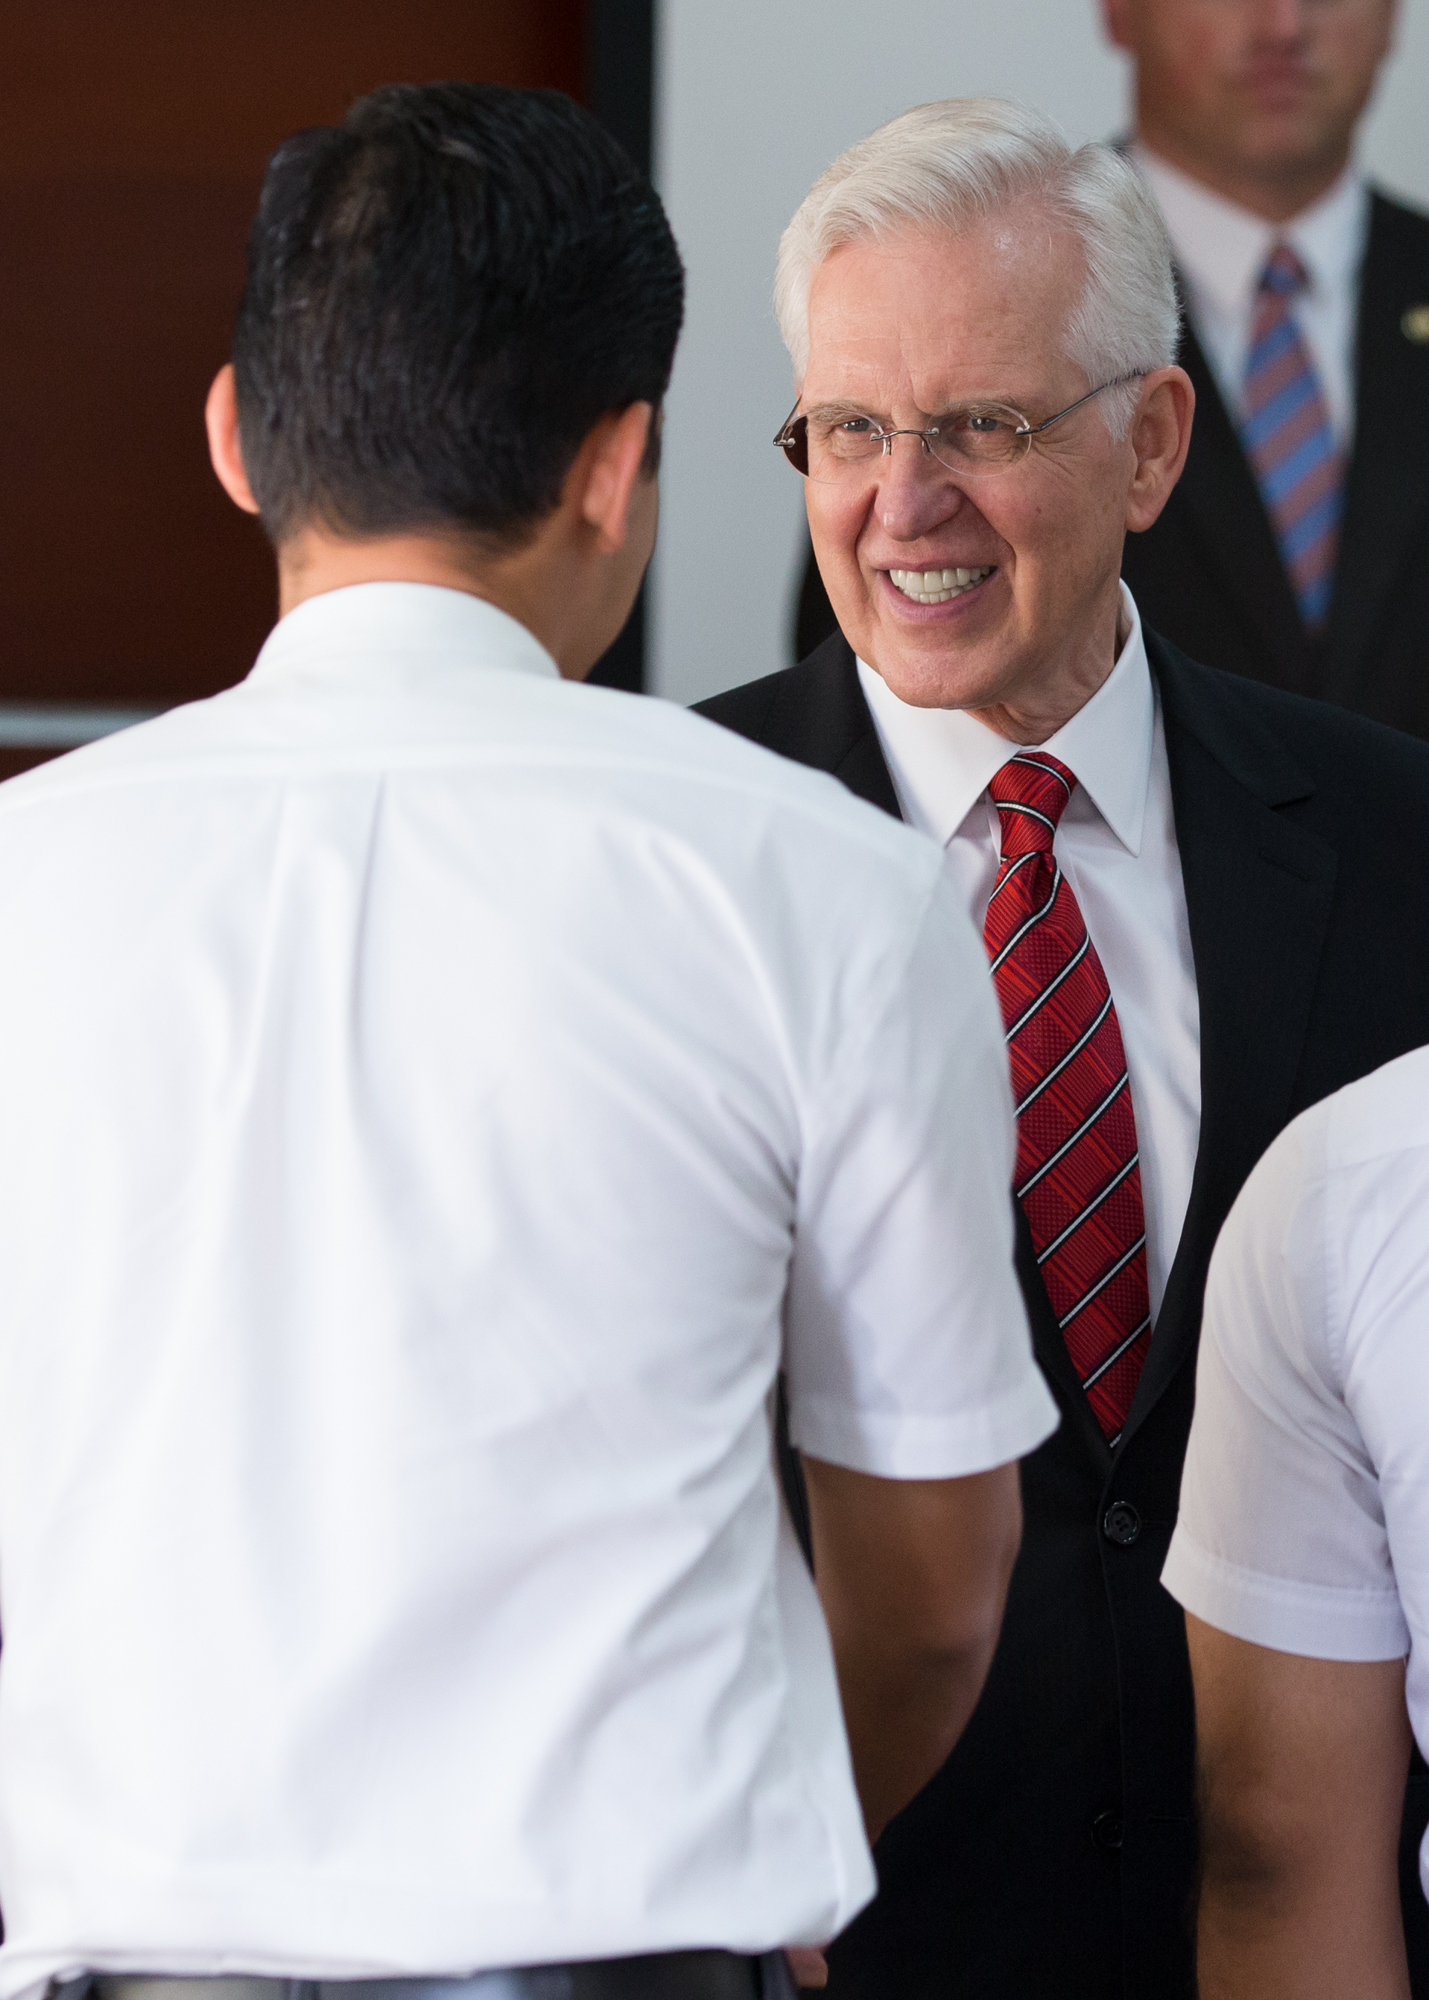 Elder D. Todd Christofferson shakes hands with a missionary at a gathering with the Dominican Republic Santo Domingo West Mission on Nov. 10, 2018.